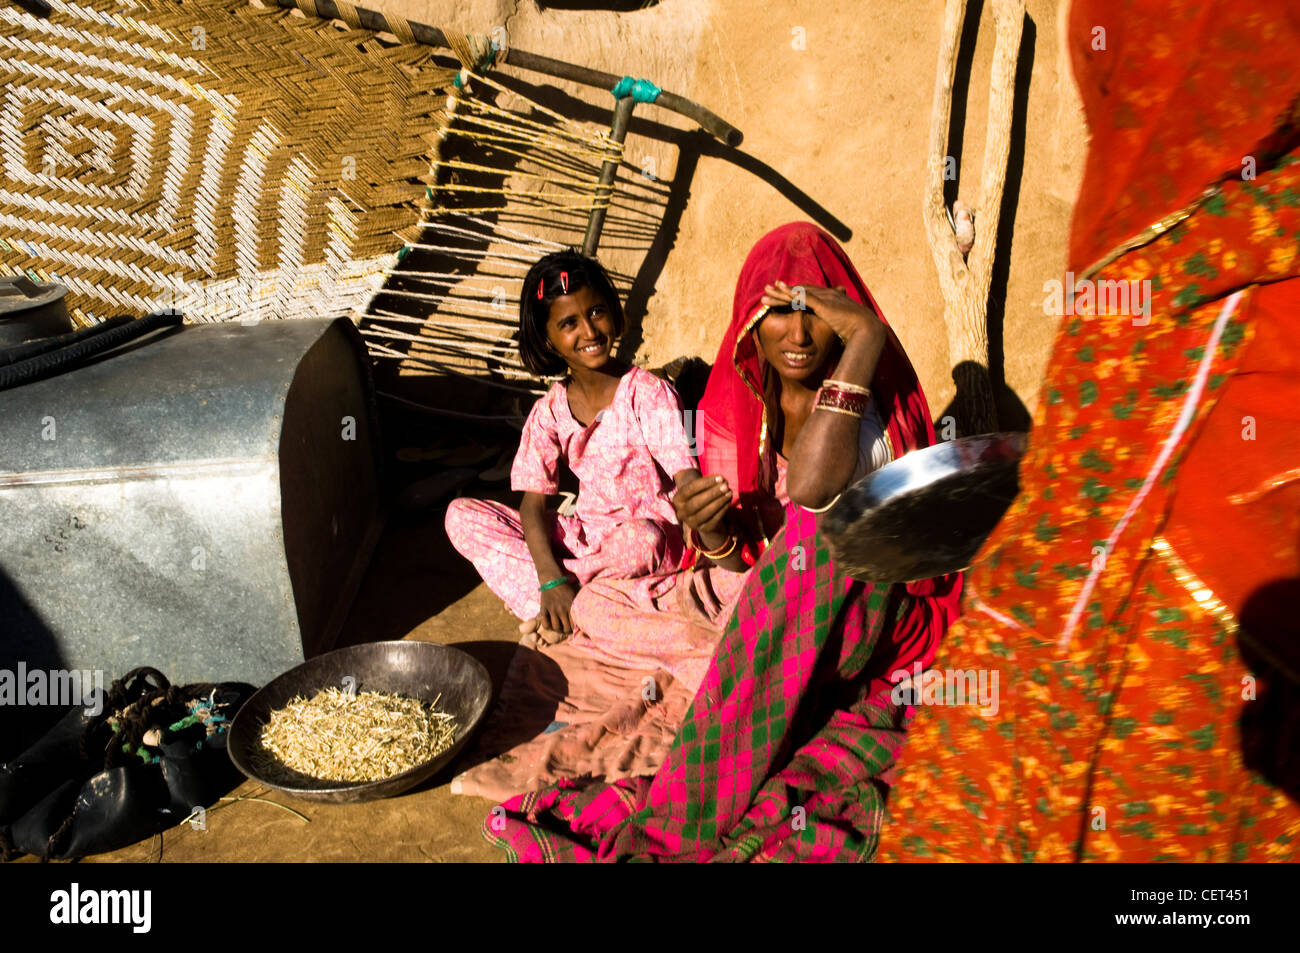 Charming Women Doing House Work In Their Village In Rajasthan, India.